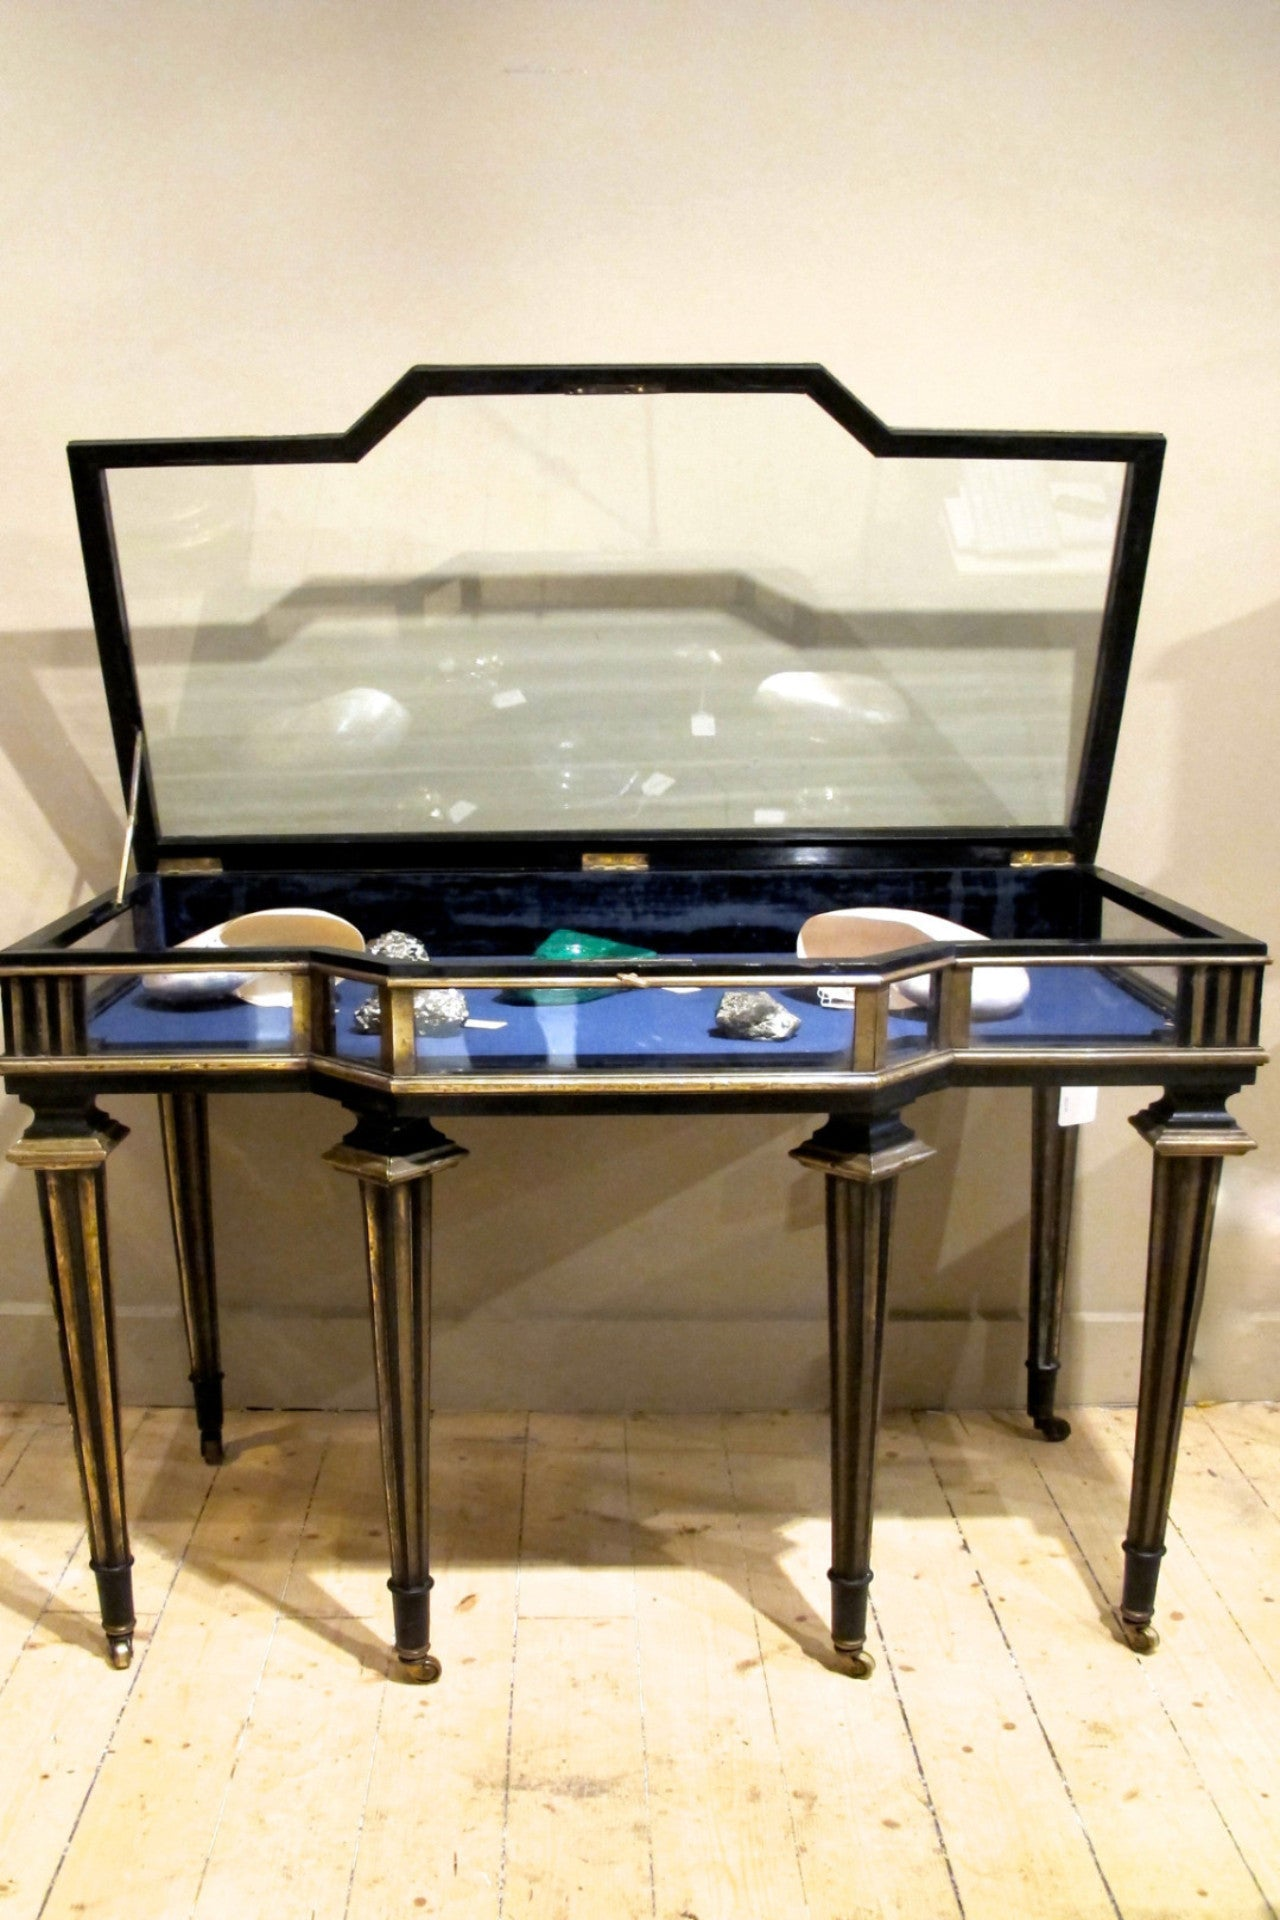 Stunnig french 19th century  ebonised brass bound jewelry display vitrine.